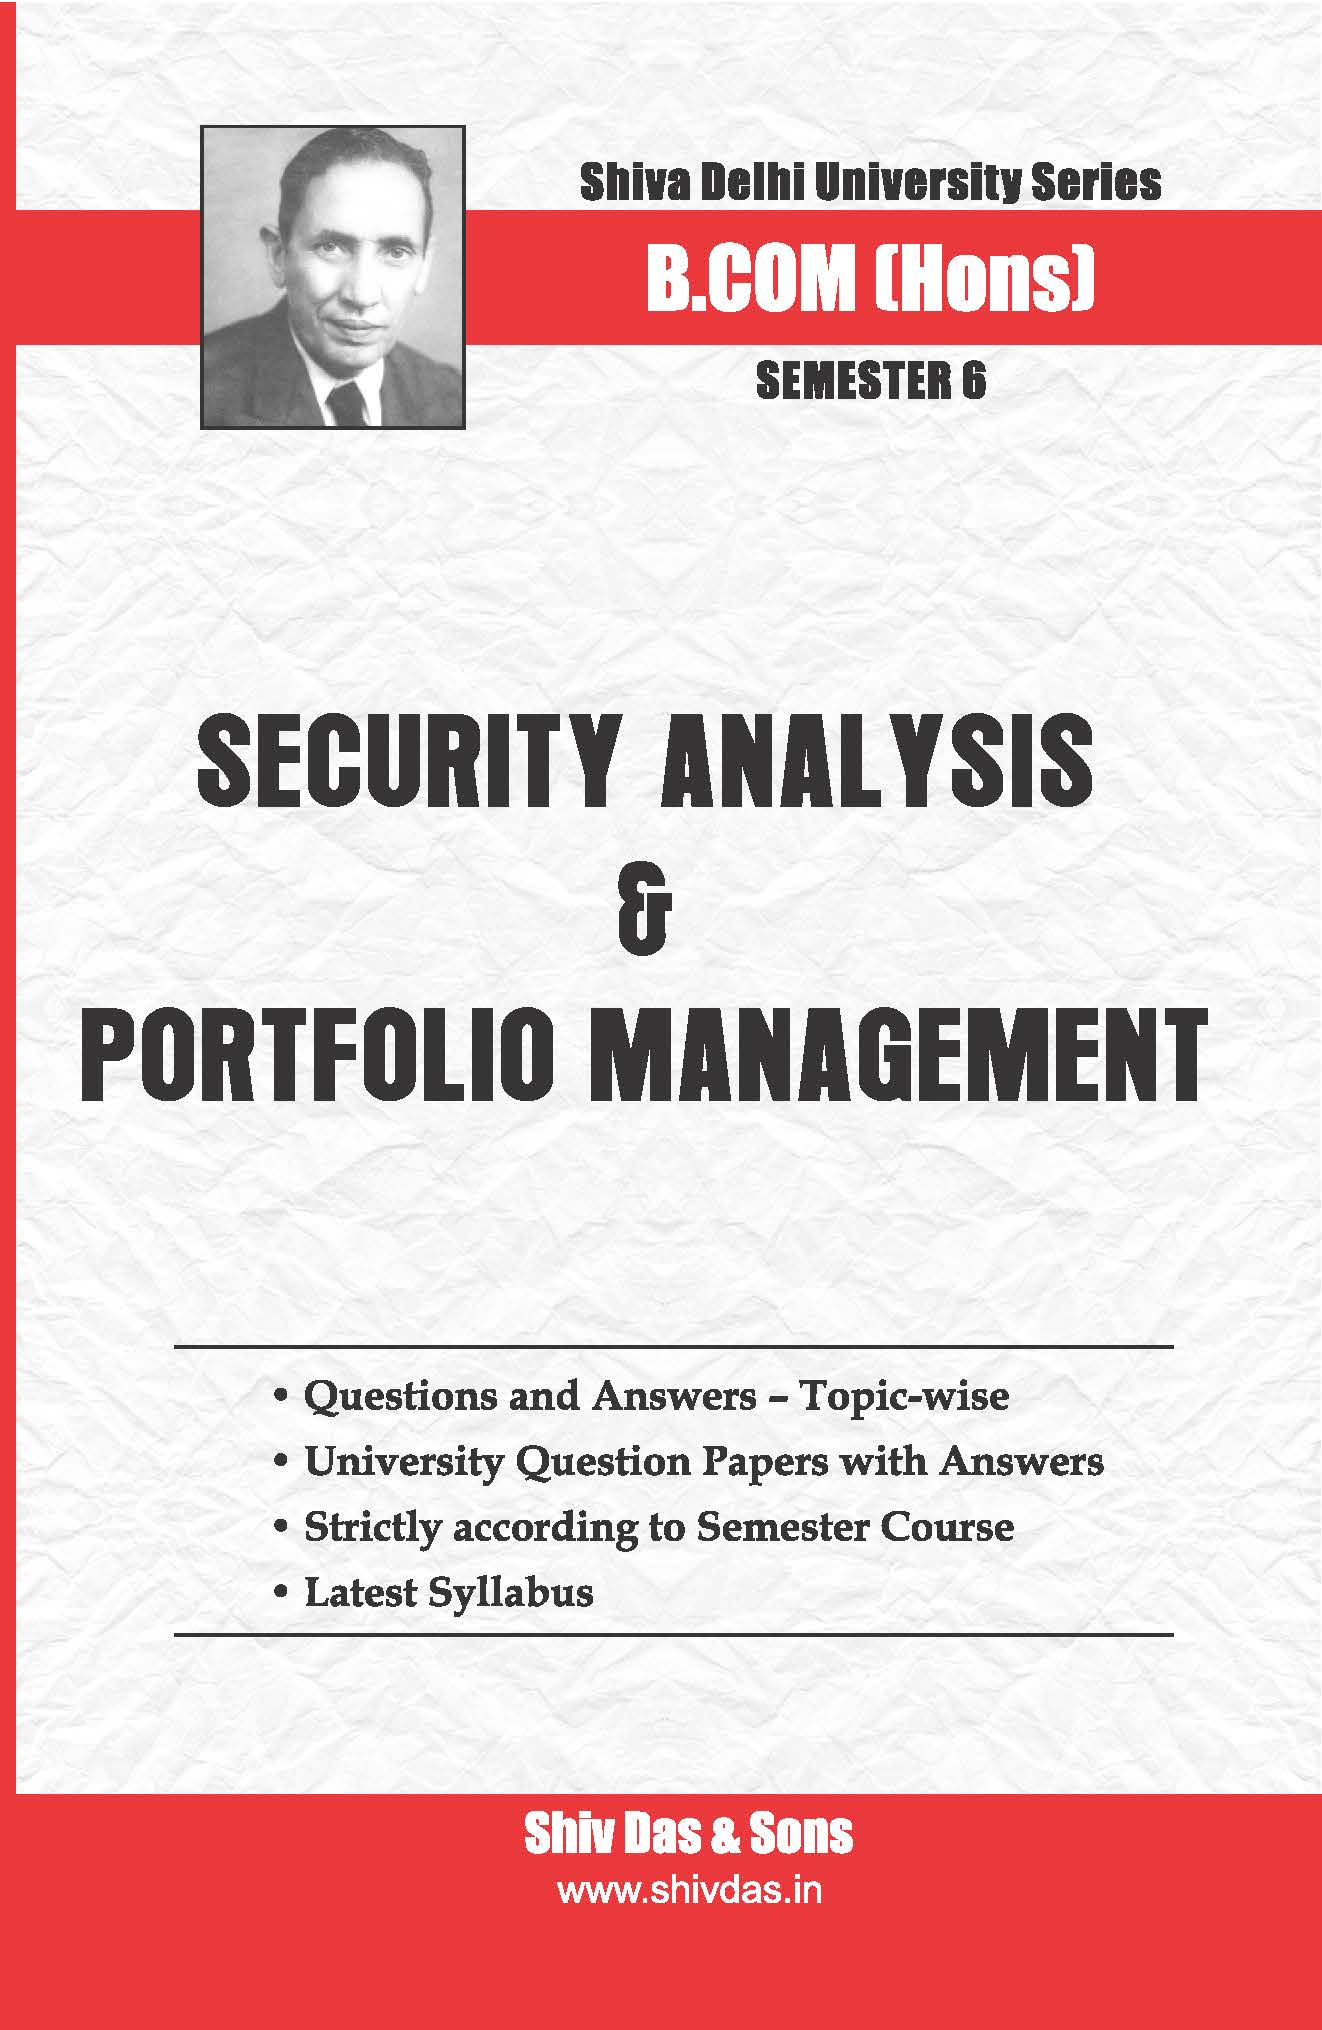 security analysis portfolio management Embed (for wordpresscom hosted blogs and archiveorg item  tags.